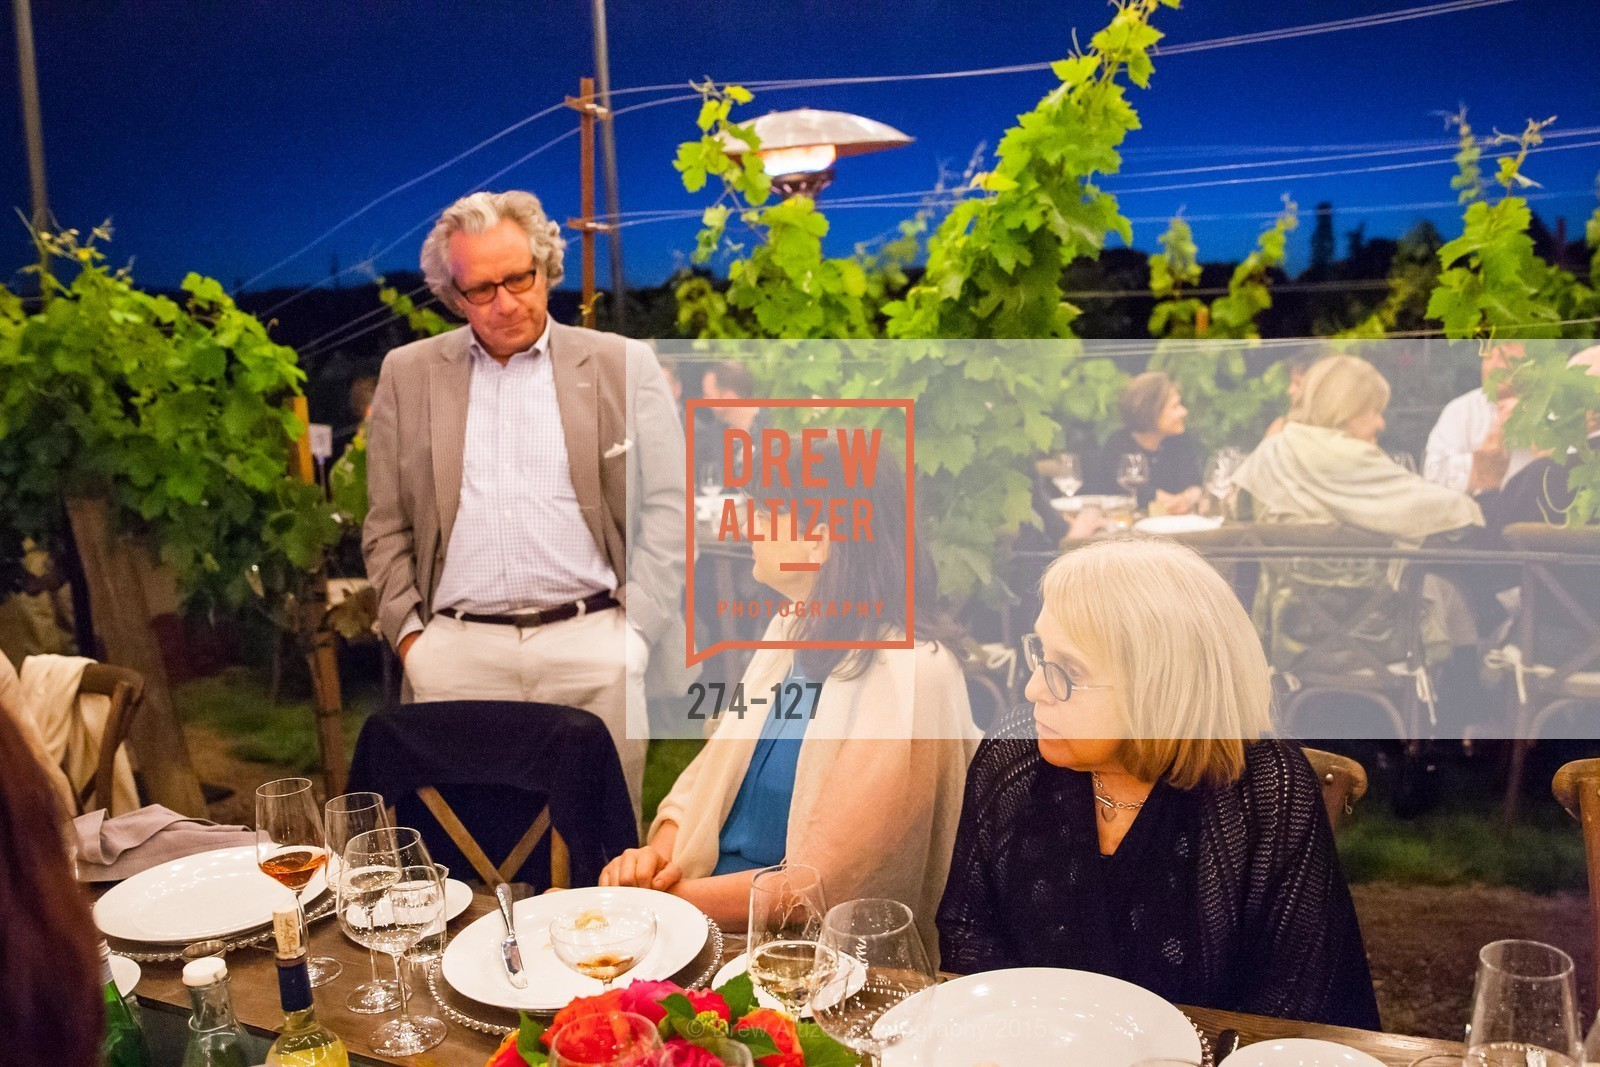 Peter Allen, Luanne Calvert, An Evening in the Vineyard hosted by JACK CALHOUN & TRENT NORRIS, Jack Calhoun & Trent Norris Vineyard. 3393 Dry Creek Road, Healdsburg CA 95448, May 22nd, 2015,Drew Altizer, Drew Altizer Photography, full-service agency, private events, San Francisco photographer, photographer california